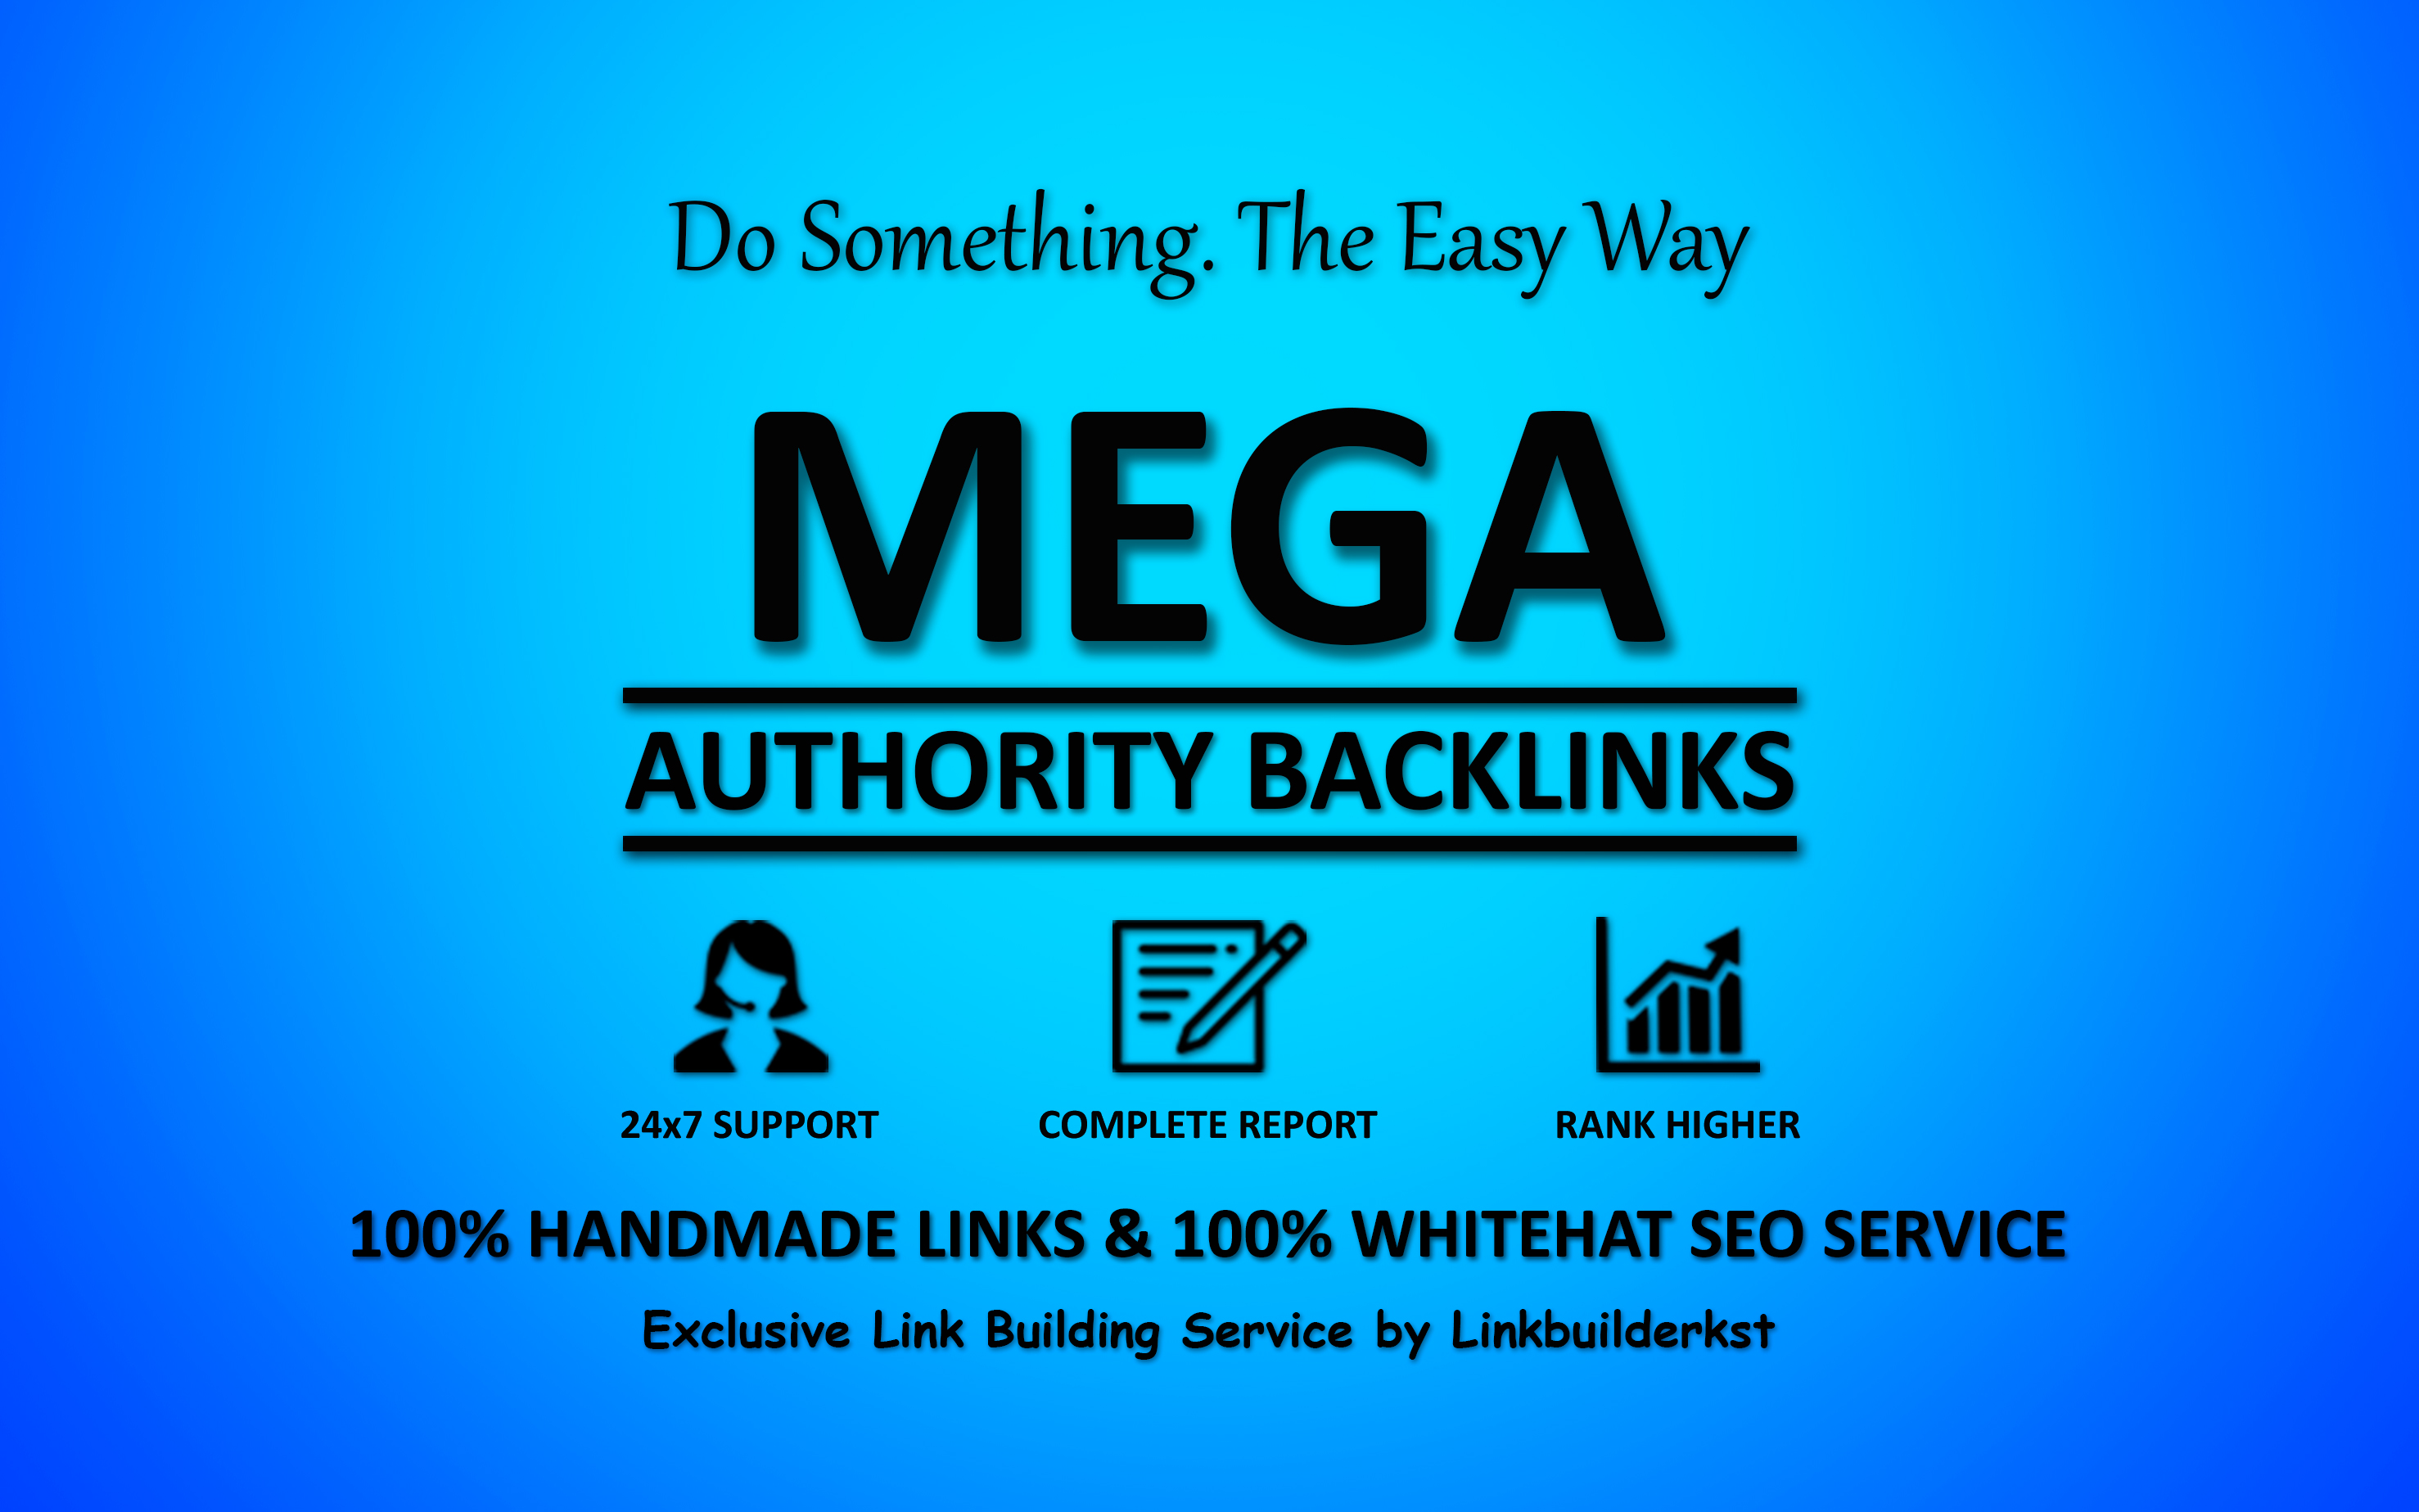 Mega Authority Backlinks - Ultimate Rank Solution SEO Service To Skyrocket Your Website